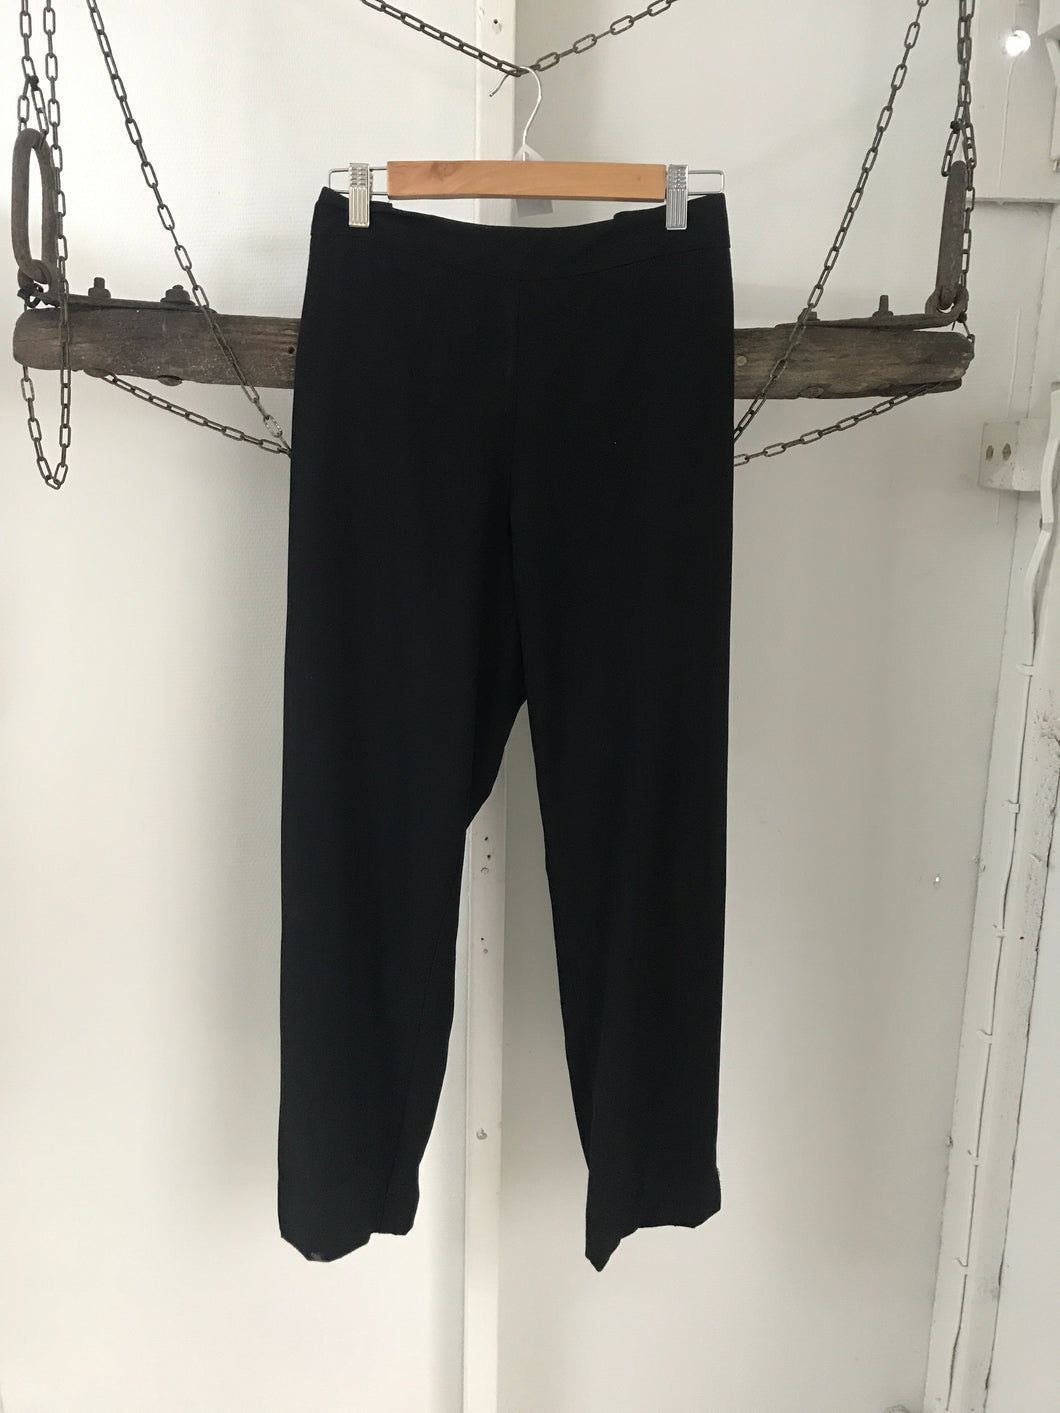 Autograph Black Pants Size 18